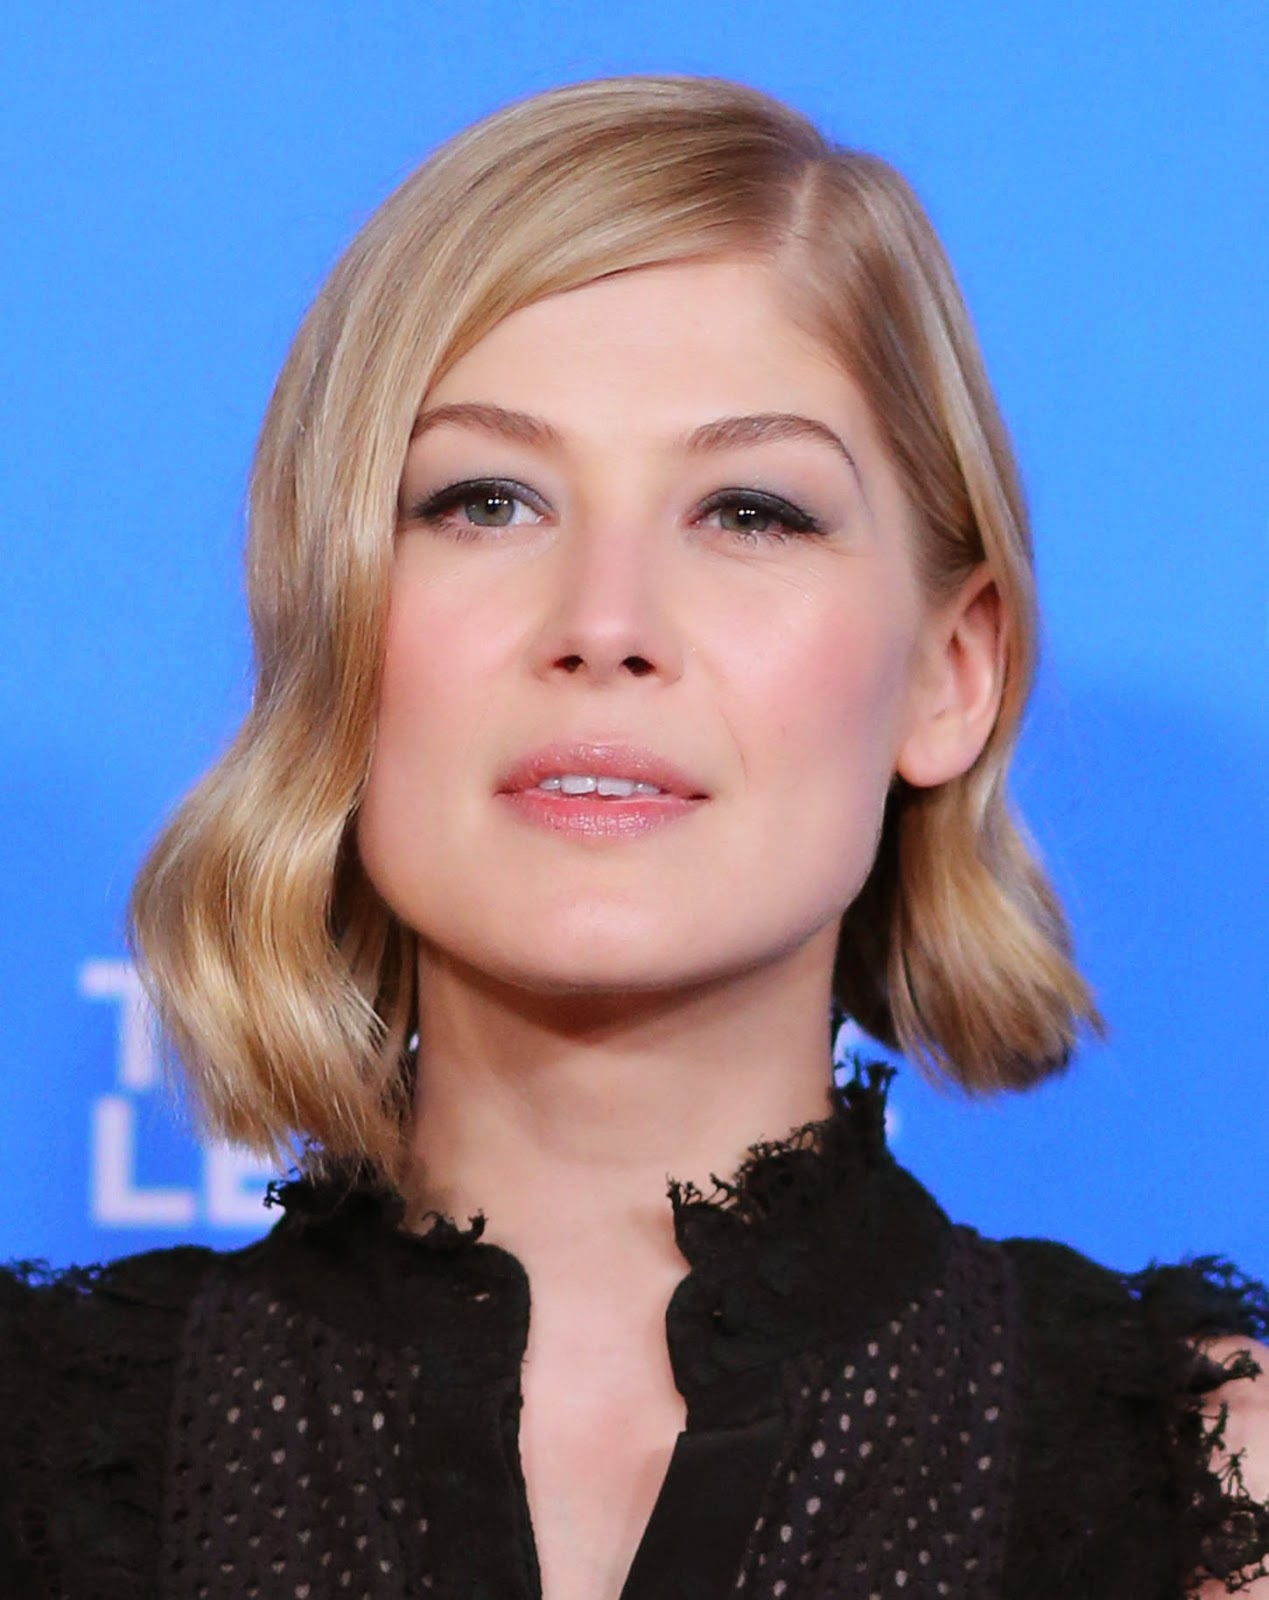 Rosamund Pike wins the Virtuosos Award at the 30th Annual Santa Barbara International Film Festival